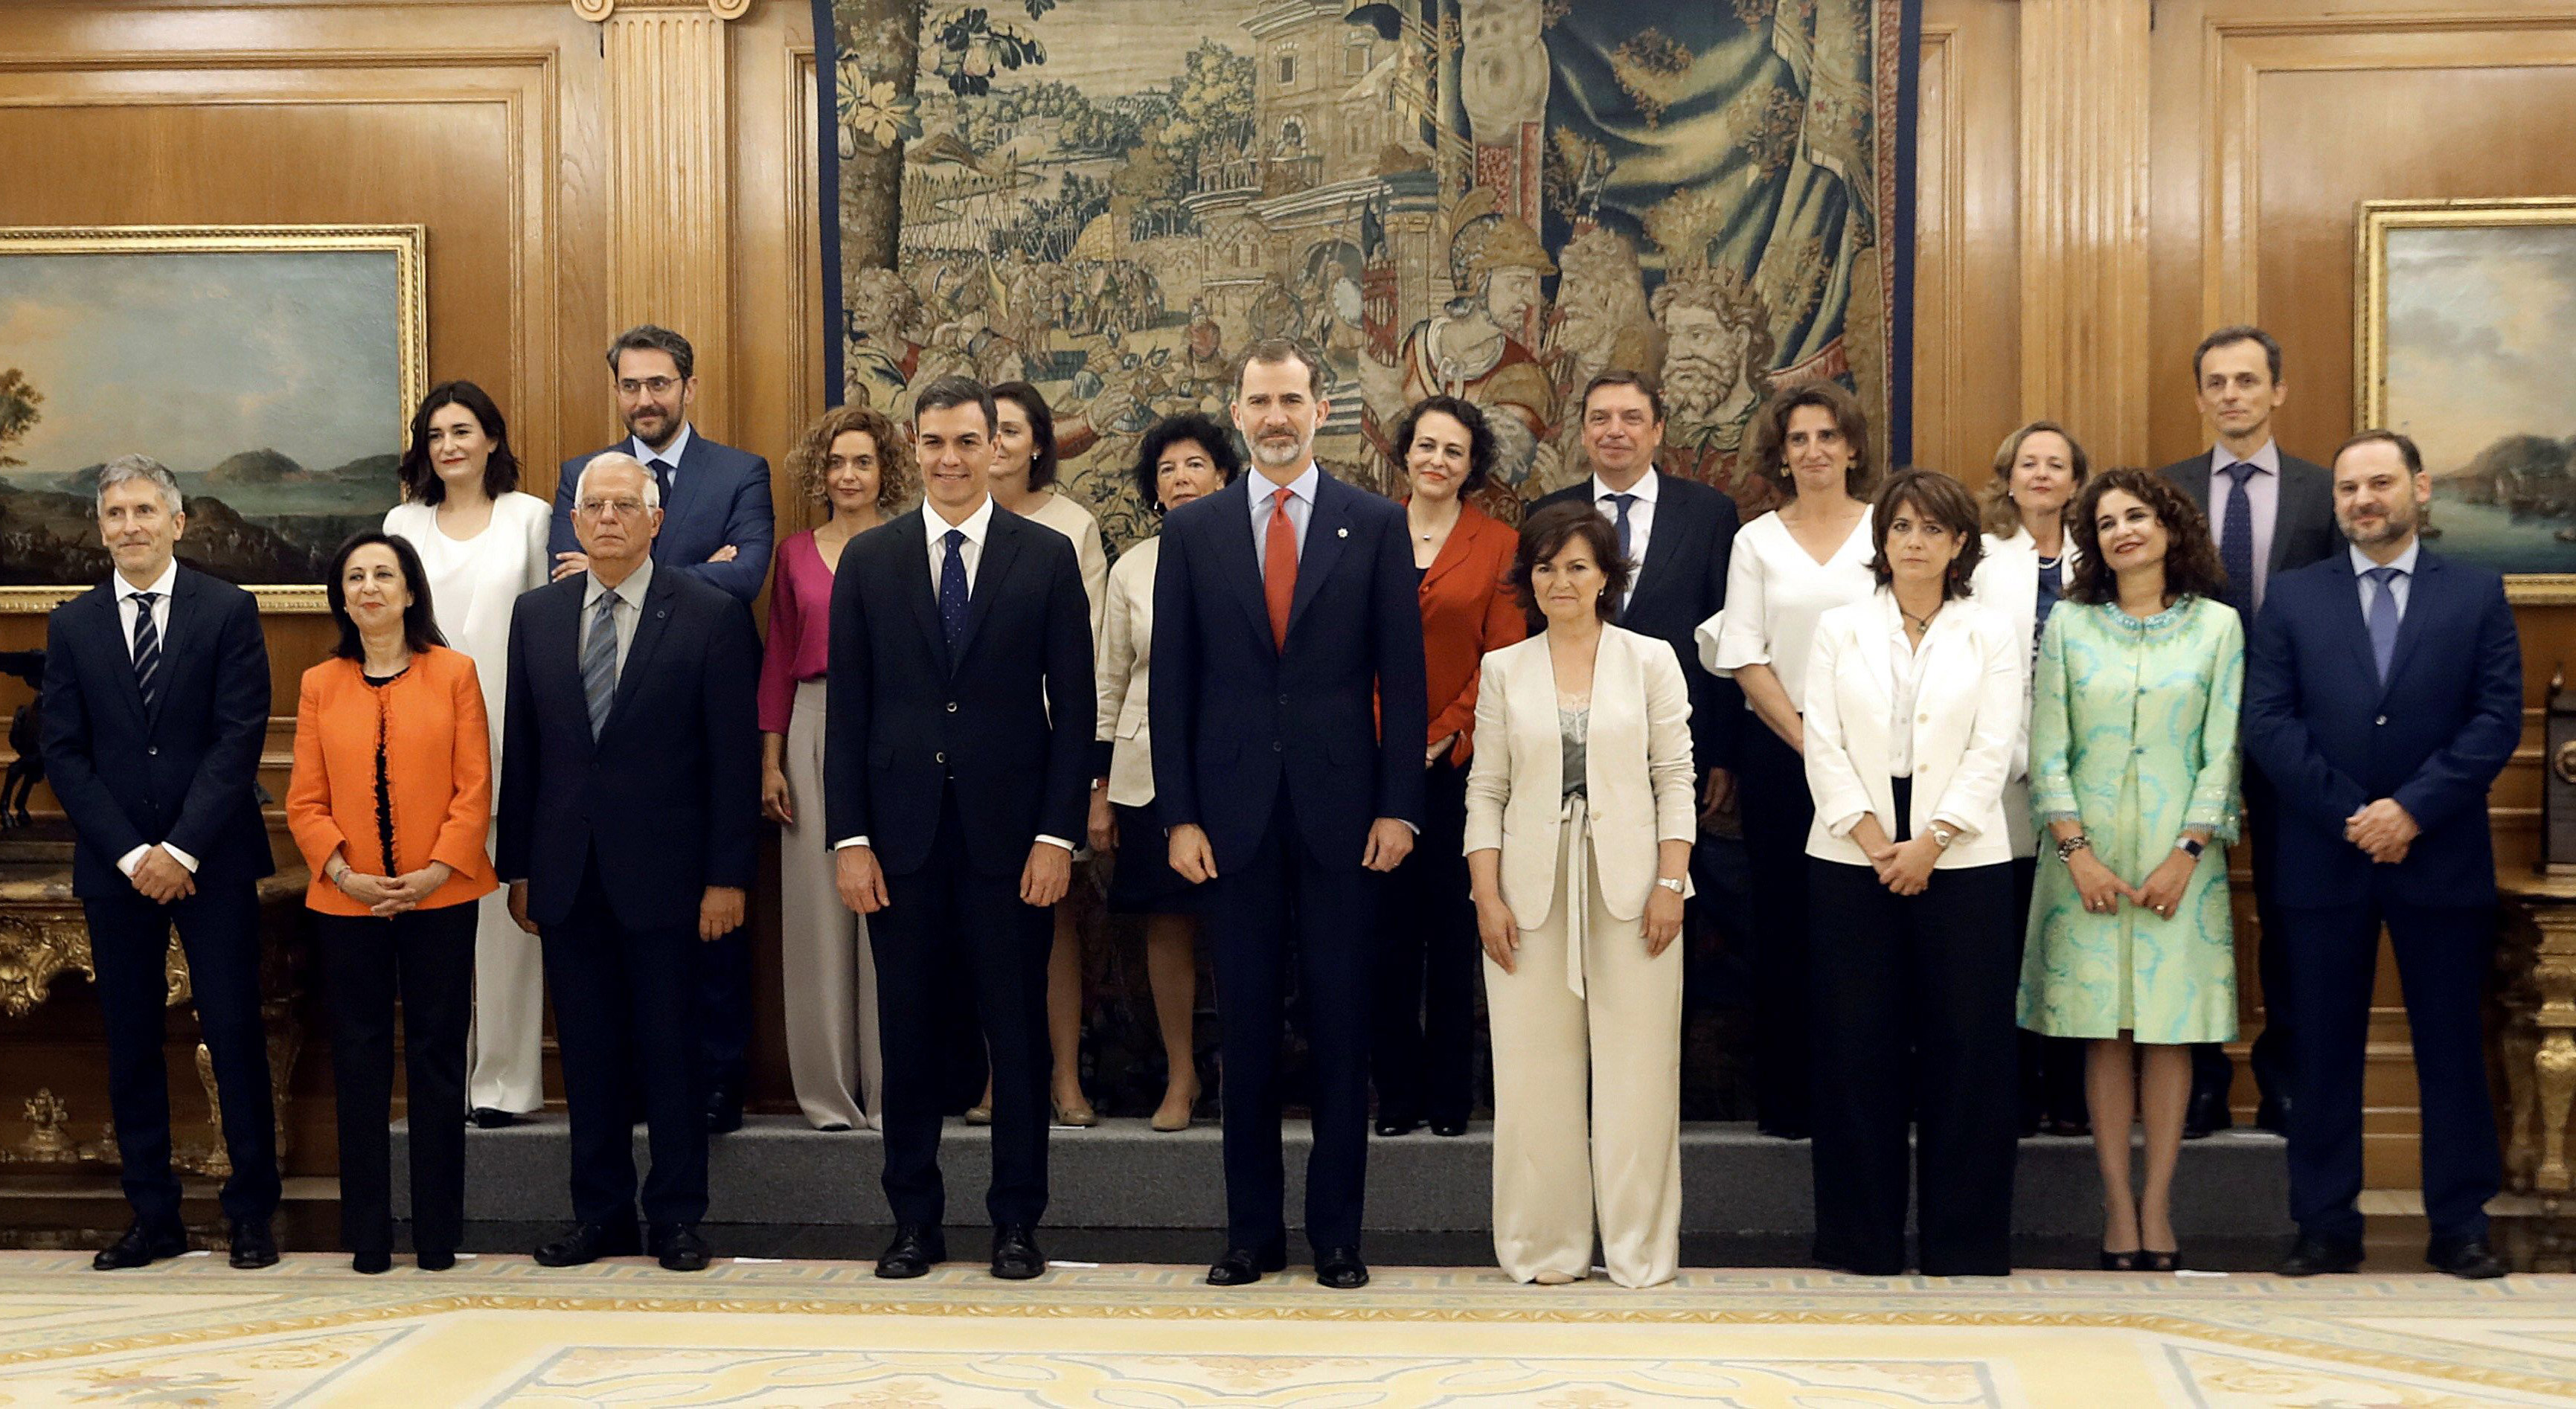 The new Spanish government's ministers pose with Spanish Prime Minister Pedro Sanchez (7L) and King Felipe VI (C) after taking oath of office at La Zarzuela palace in Madrid on June 7, 2018.